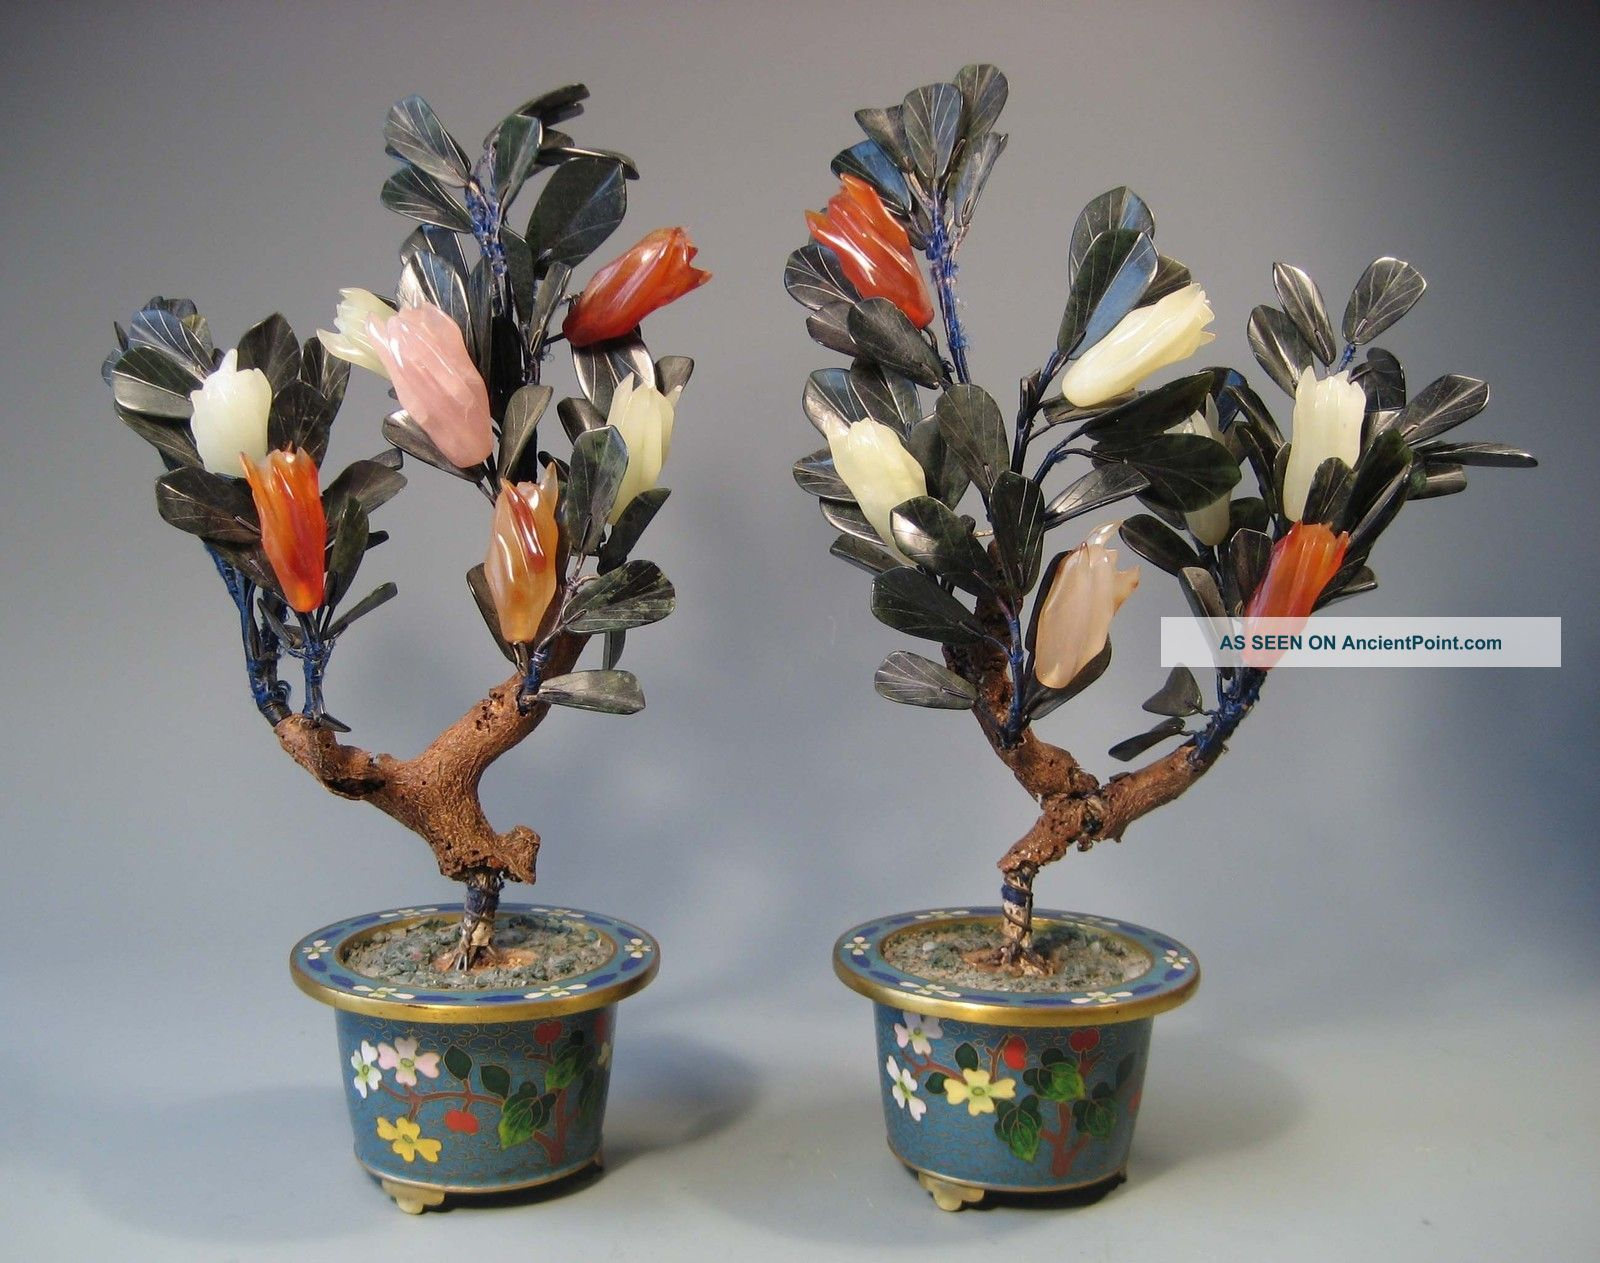 pair_of_china_chinese_hardstone_plants_set_in_cloisonne_planters_ca___20th_c__1_lgw.jpg